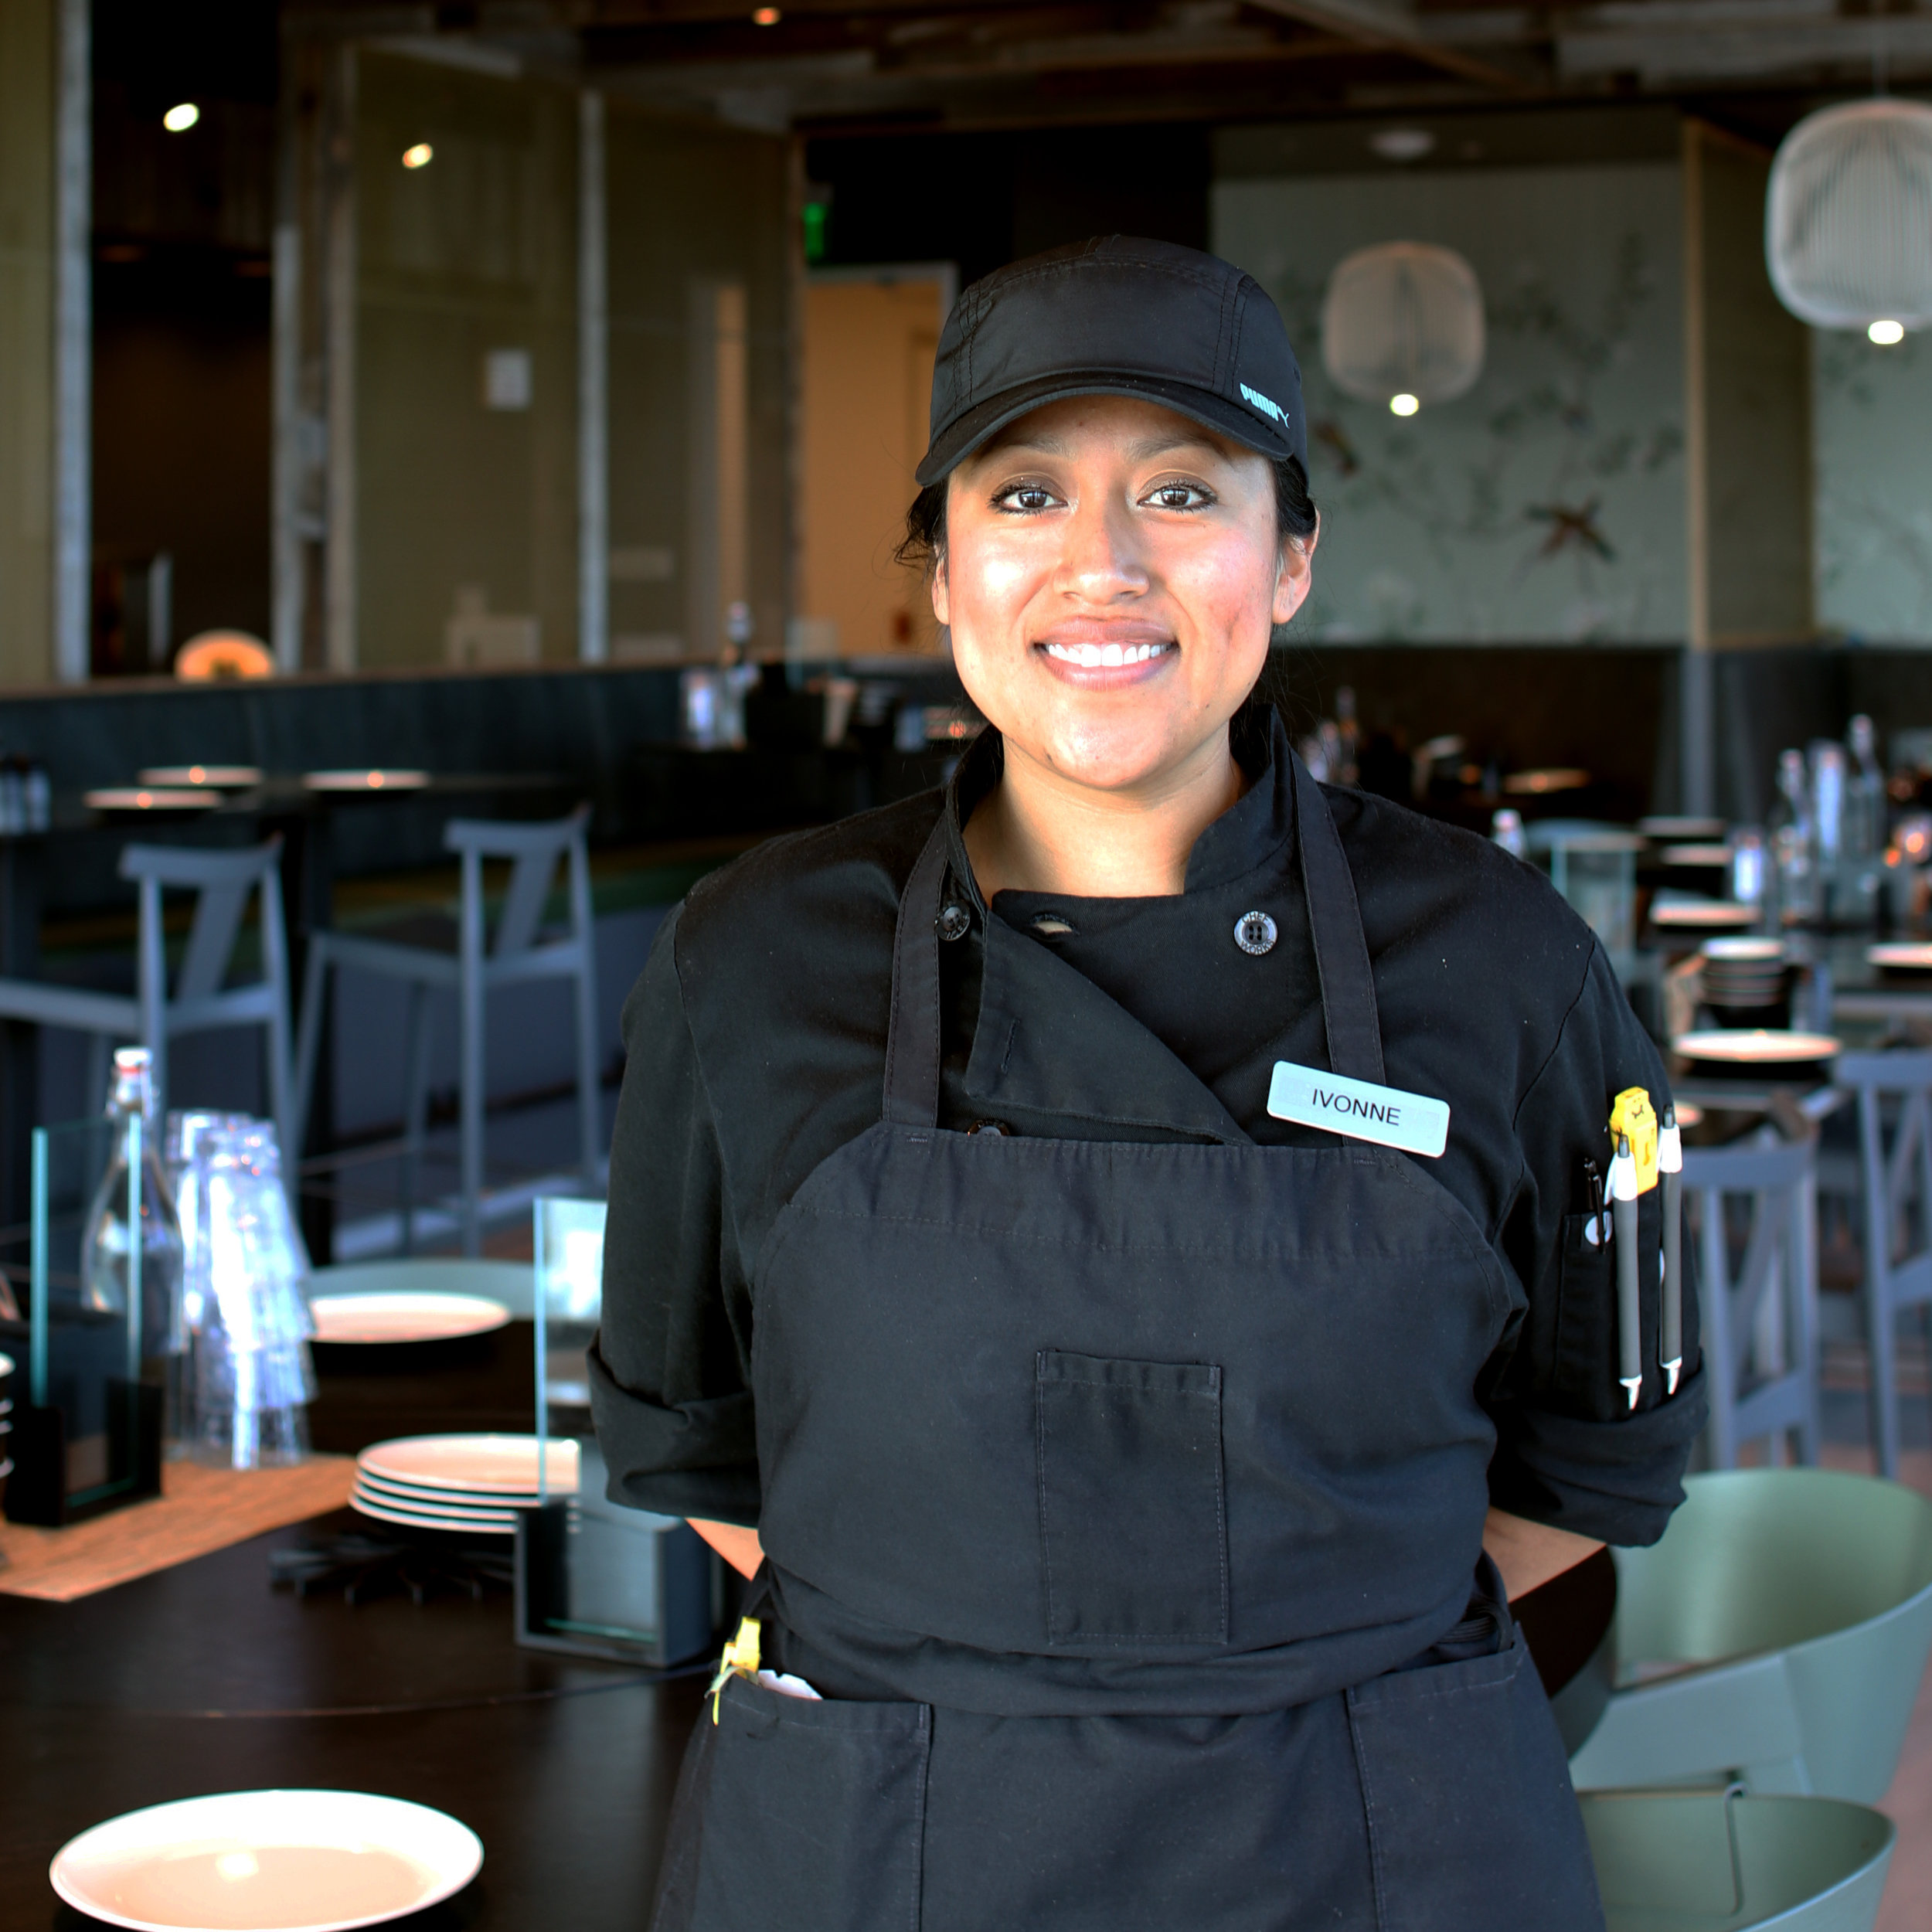 "How Ivonne launched her career at Food+ - For many, our Student Program doesn't just provide real-world experience: It opens the door to lasting careers.For example, after completing a culinary internship, Ivonne joined the Food+ team as a line cook in the Bay Area and was soon promoted: first to lead line cook, and then to sous chef. In her time with Food+, she's explored diverse cuisines, helped open new cafe spaces and learned from skilled chefs.Ivonne is excited to continue her Food+ career journey and experience further growth. ""I can't wait for a new experience to grow not only as a chef, but as a person,"" she says.Explore opportunities with our Student Program. →"